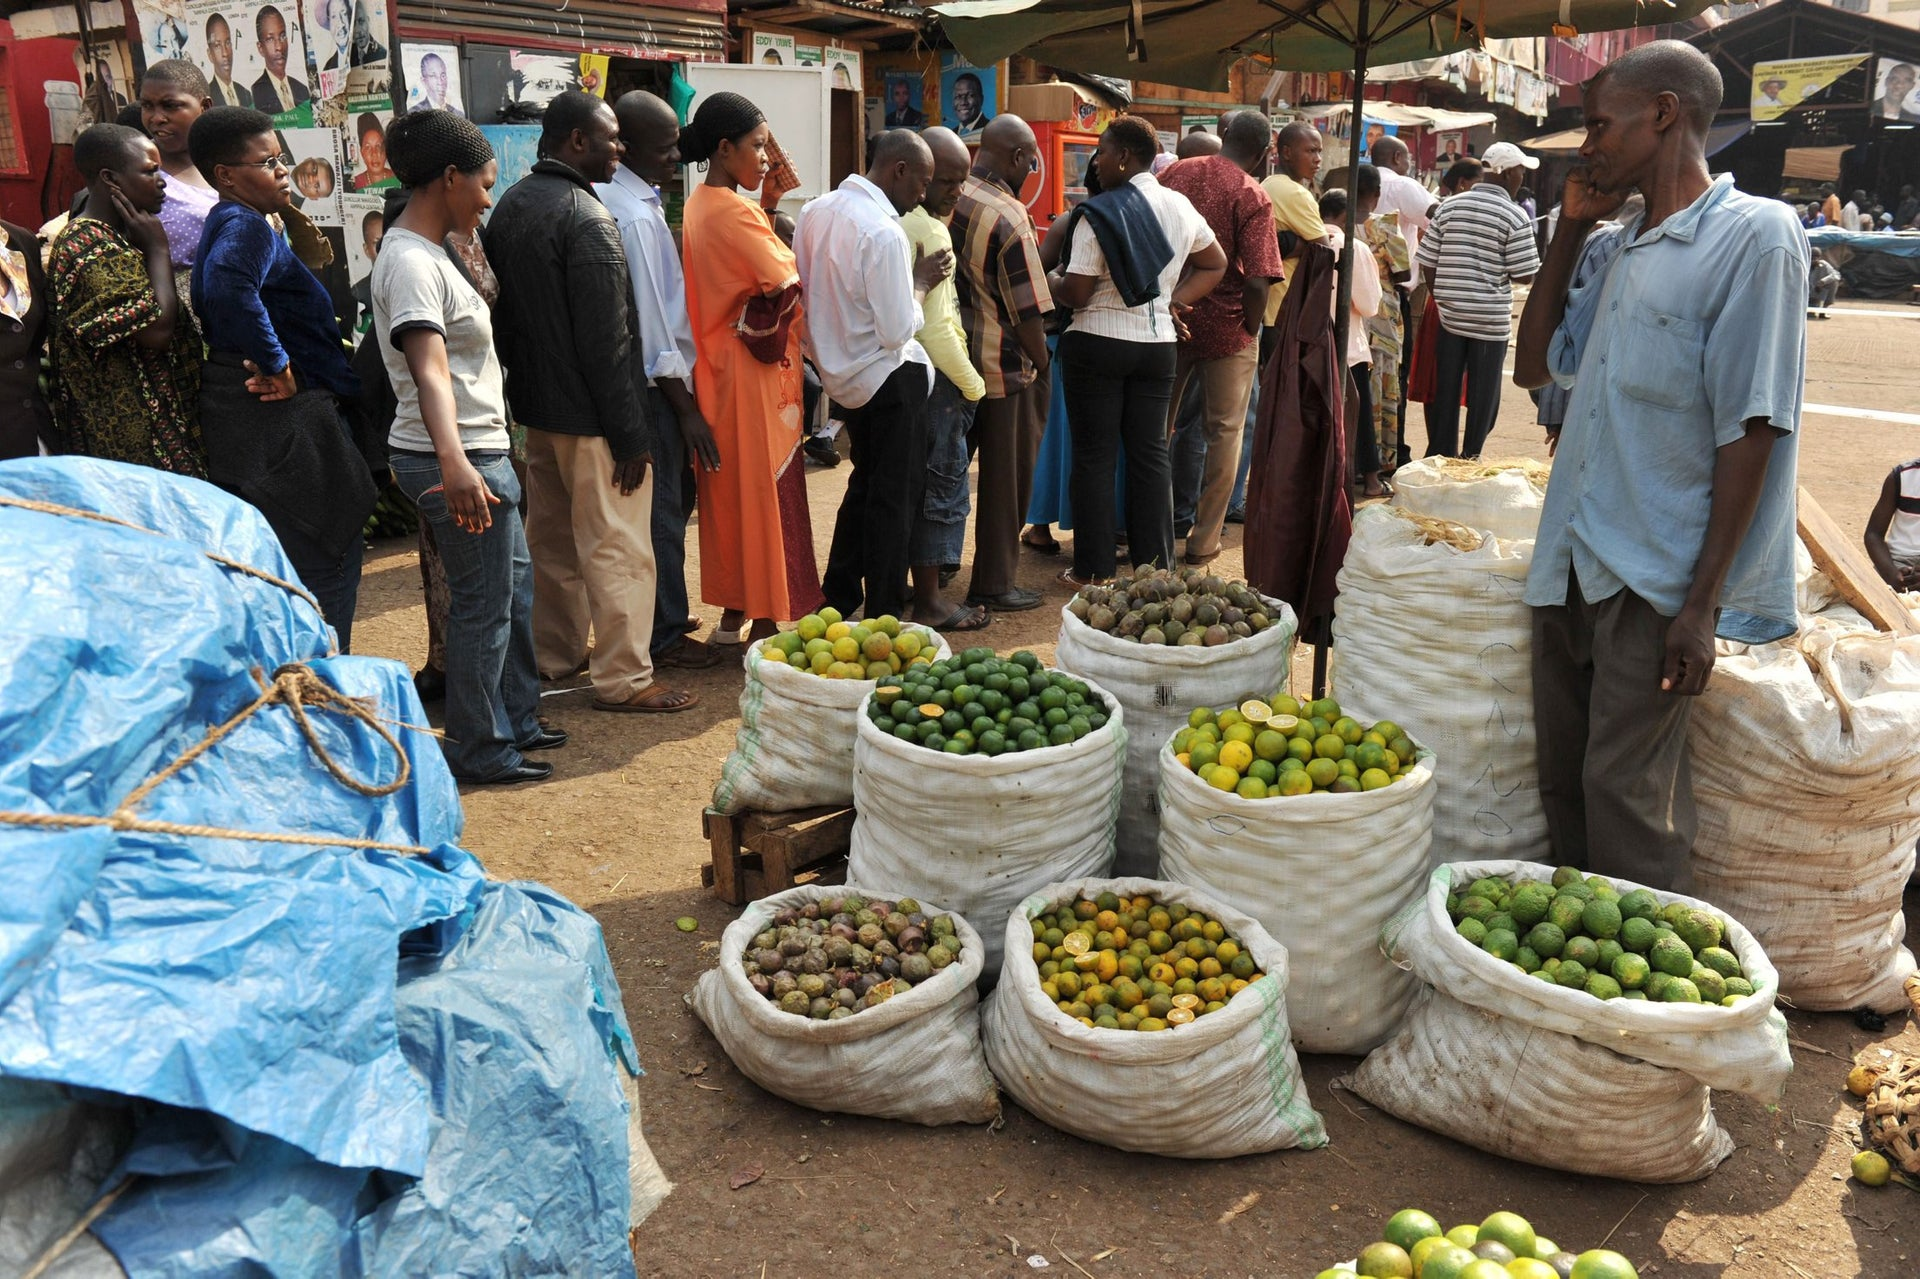 A fruit vendor at a market looks at voters waiting in line at a polling station in Uganda's capital Kampala on February 18, 2011 to vote in presidential and parliamentary elections.